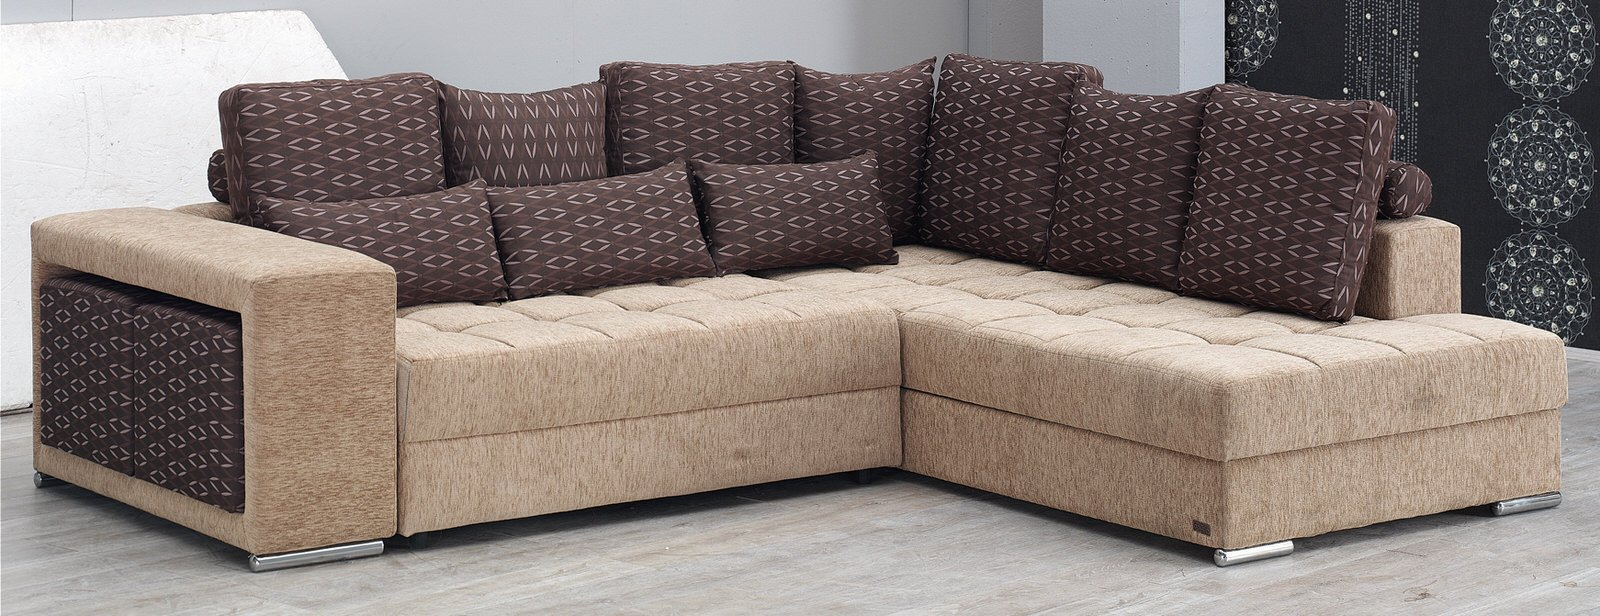 los angeles sectional sofa